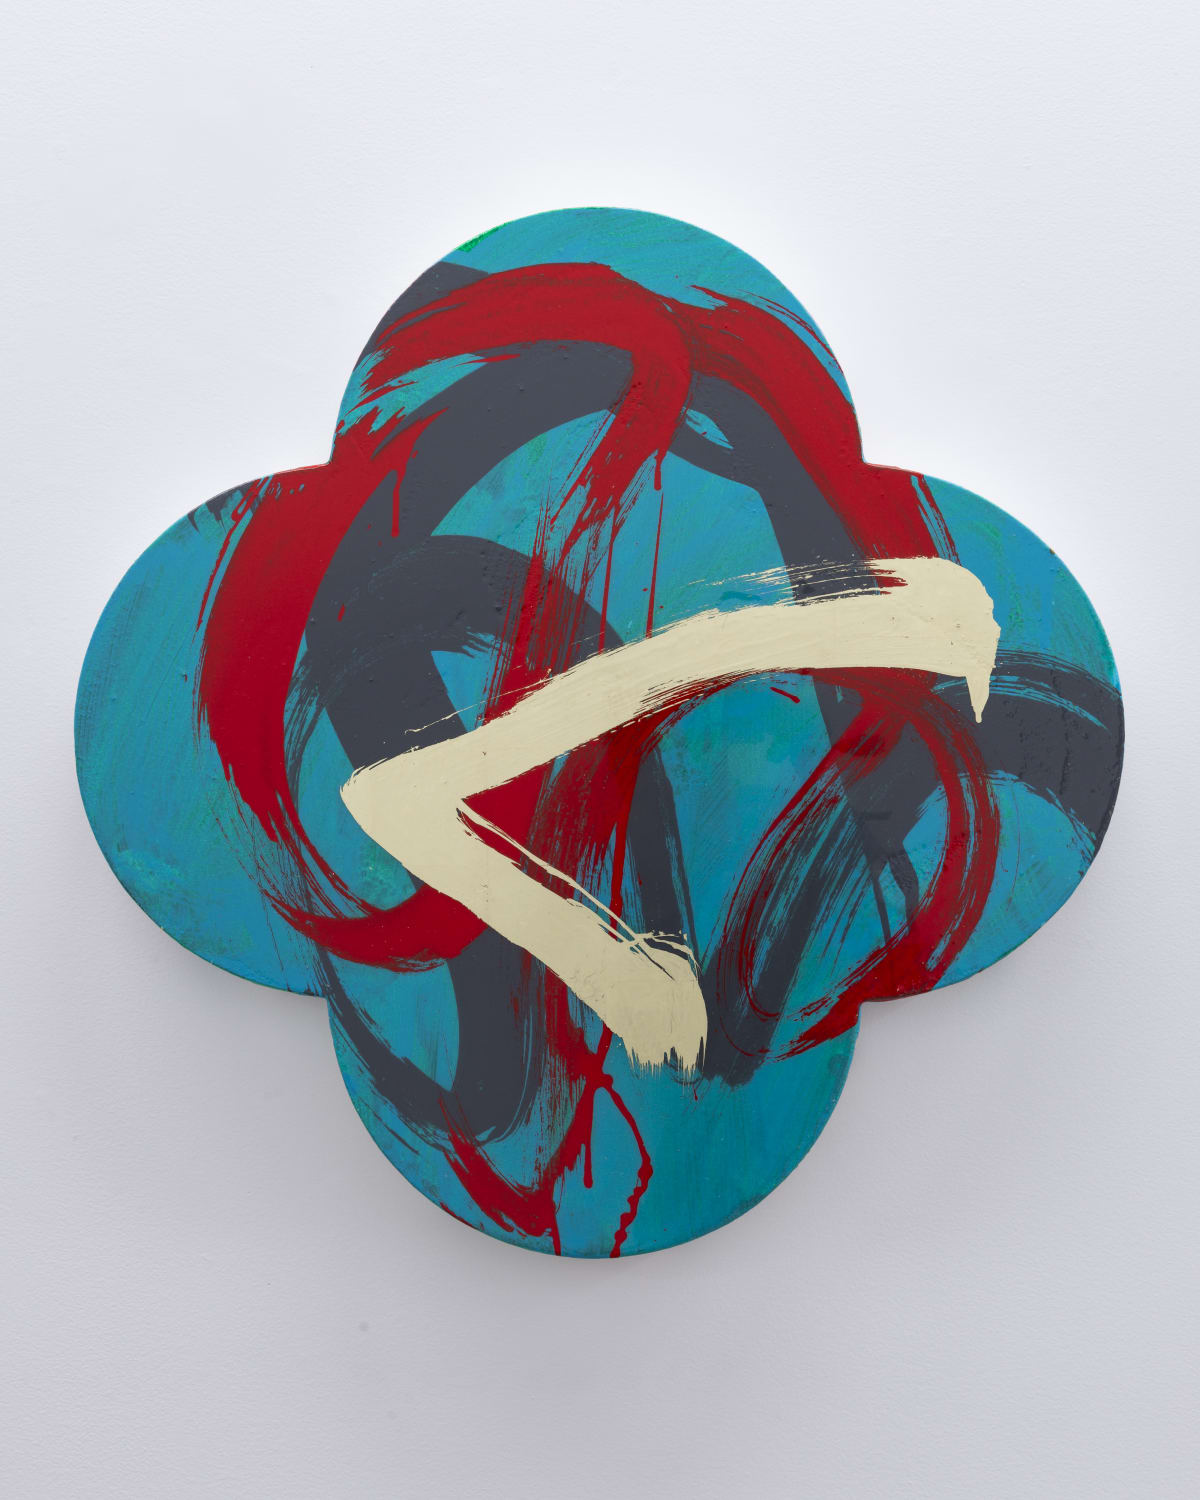 "Max GIMBLETT Pinnacle, 2018 Acrylic, Aquasize, Lemon Gold Leaf, Resin, MSA / Canvas 30"" x 30"""